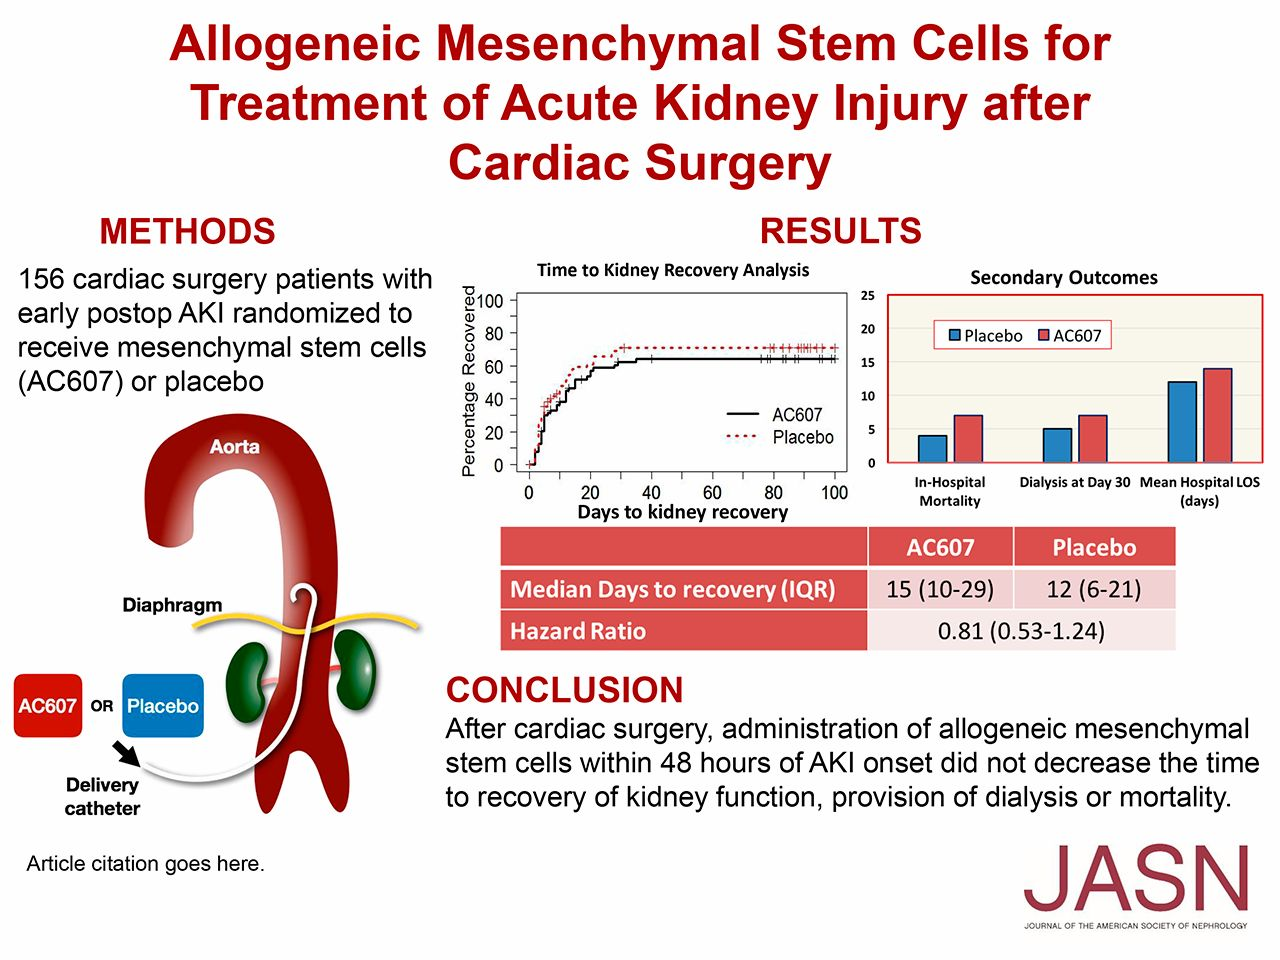 All About Anna 2005 Download allogeneic mesenchymal stem cells for treatment of aki after